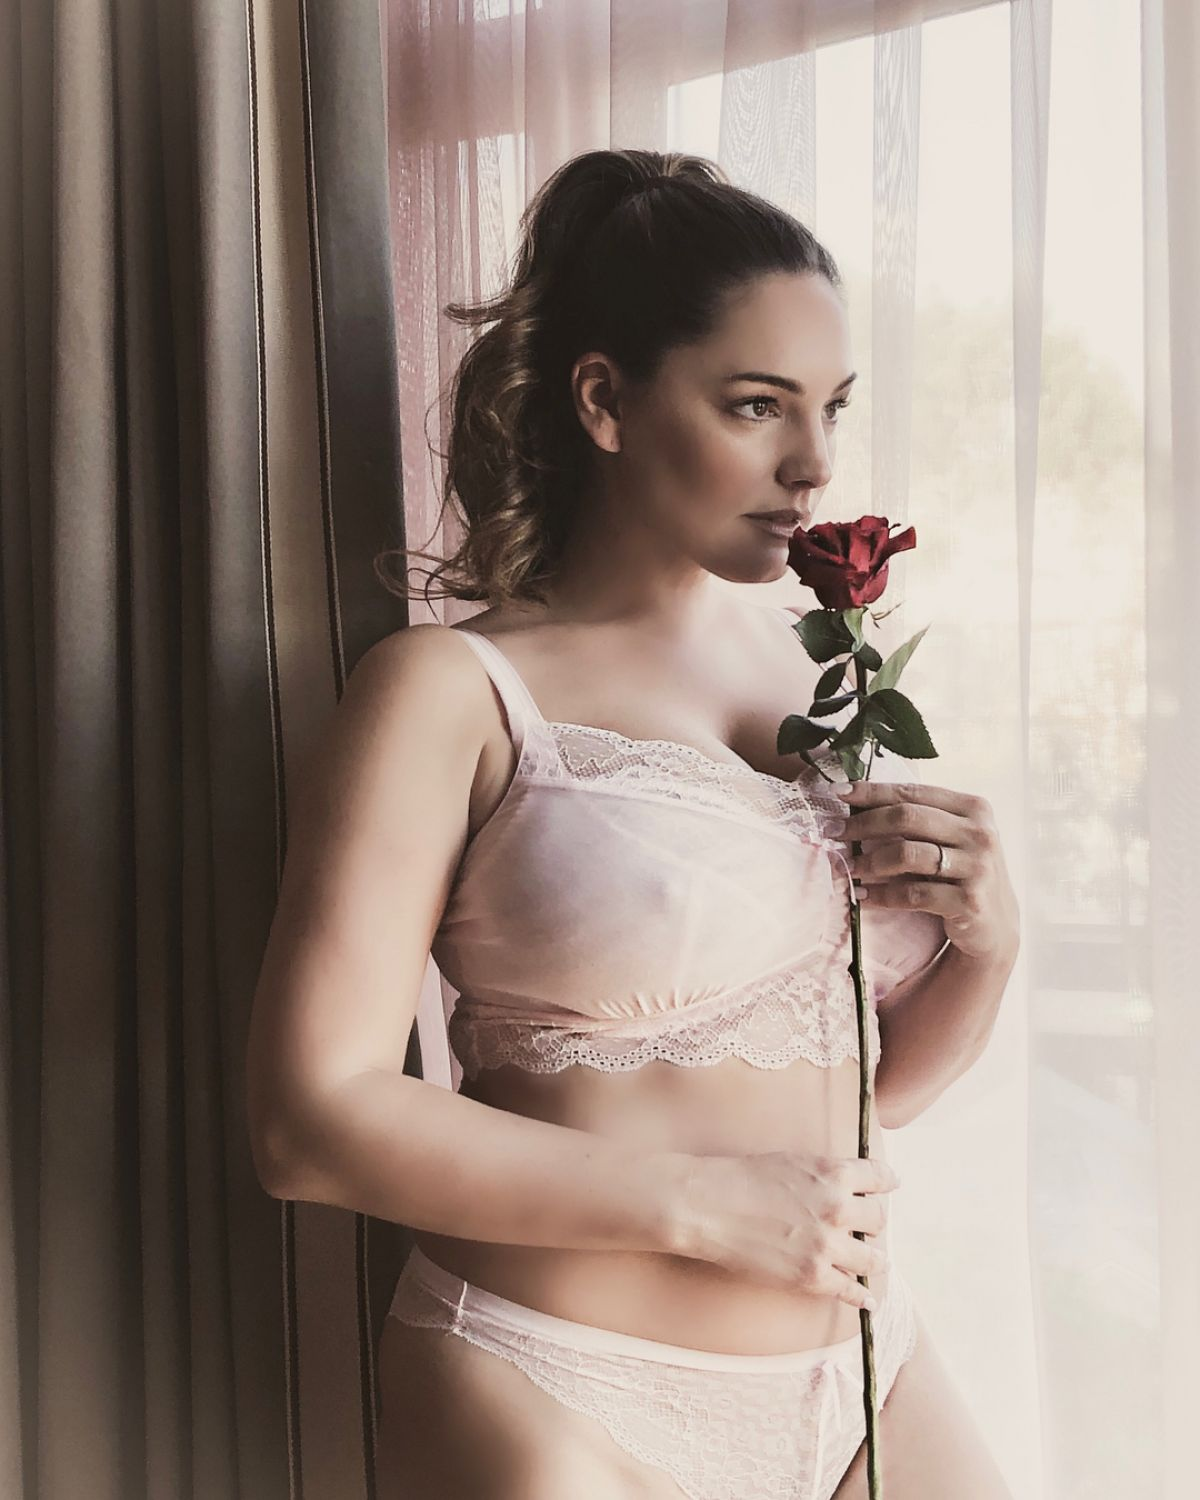 Ana Ortiz Boobs kelly brook huge breasts in valentines day lingerie